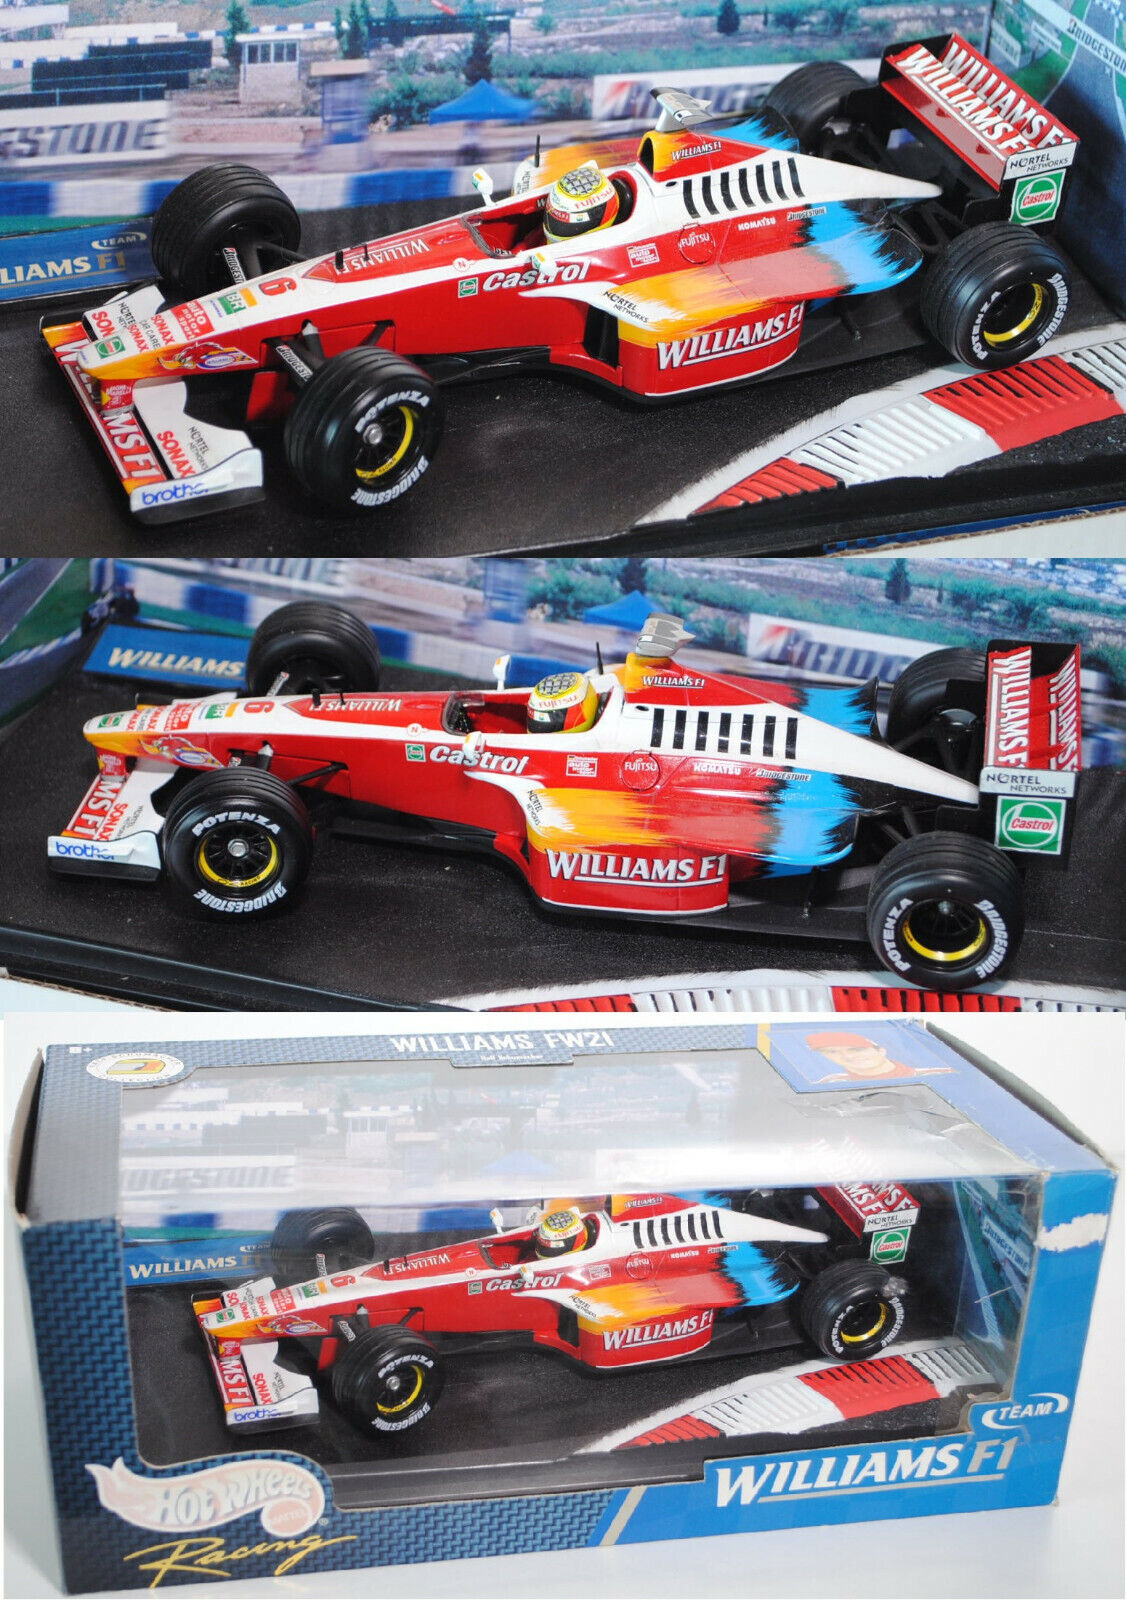 Hot Wheels racing 24622 williams fw21, fw21, fw21, ralf schumacher, 1 18, embalaje original  tienda en linea